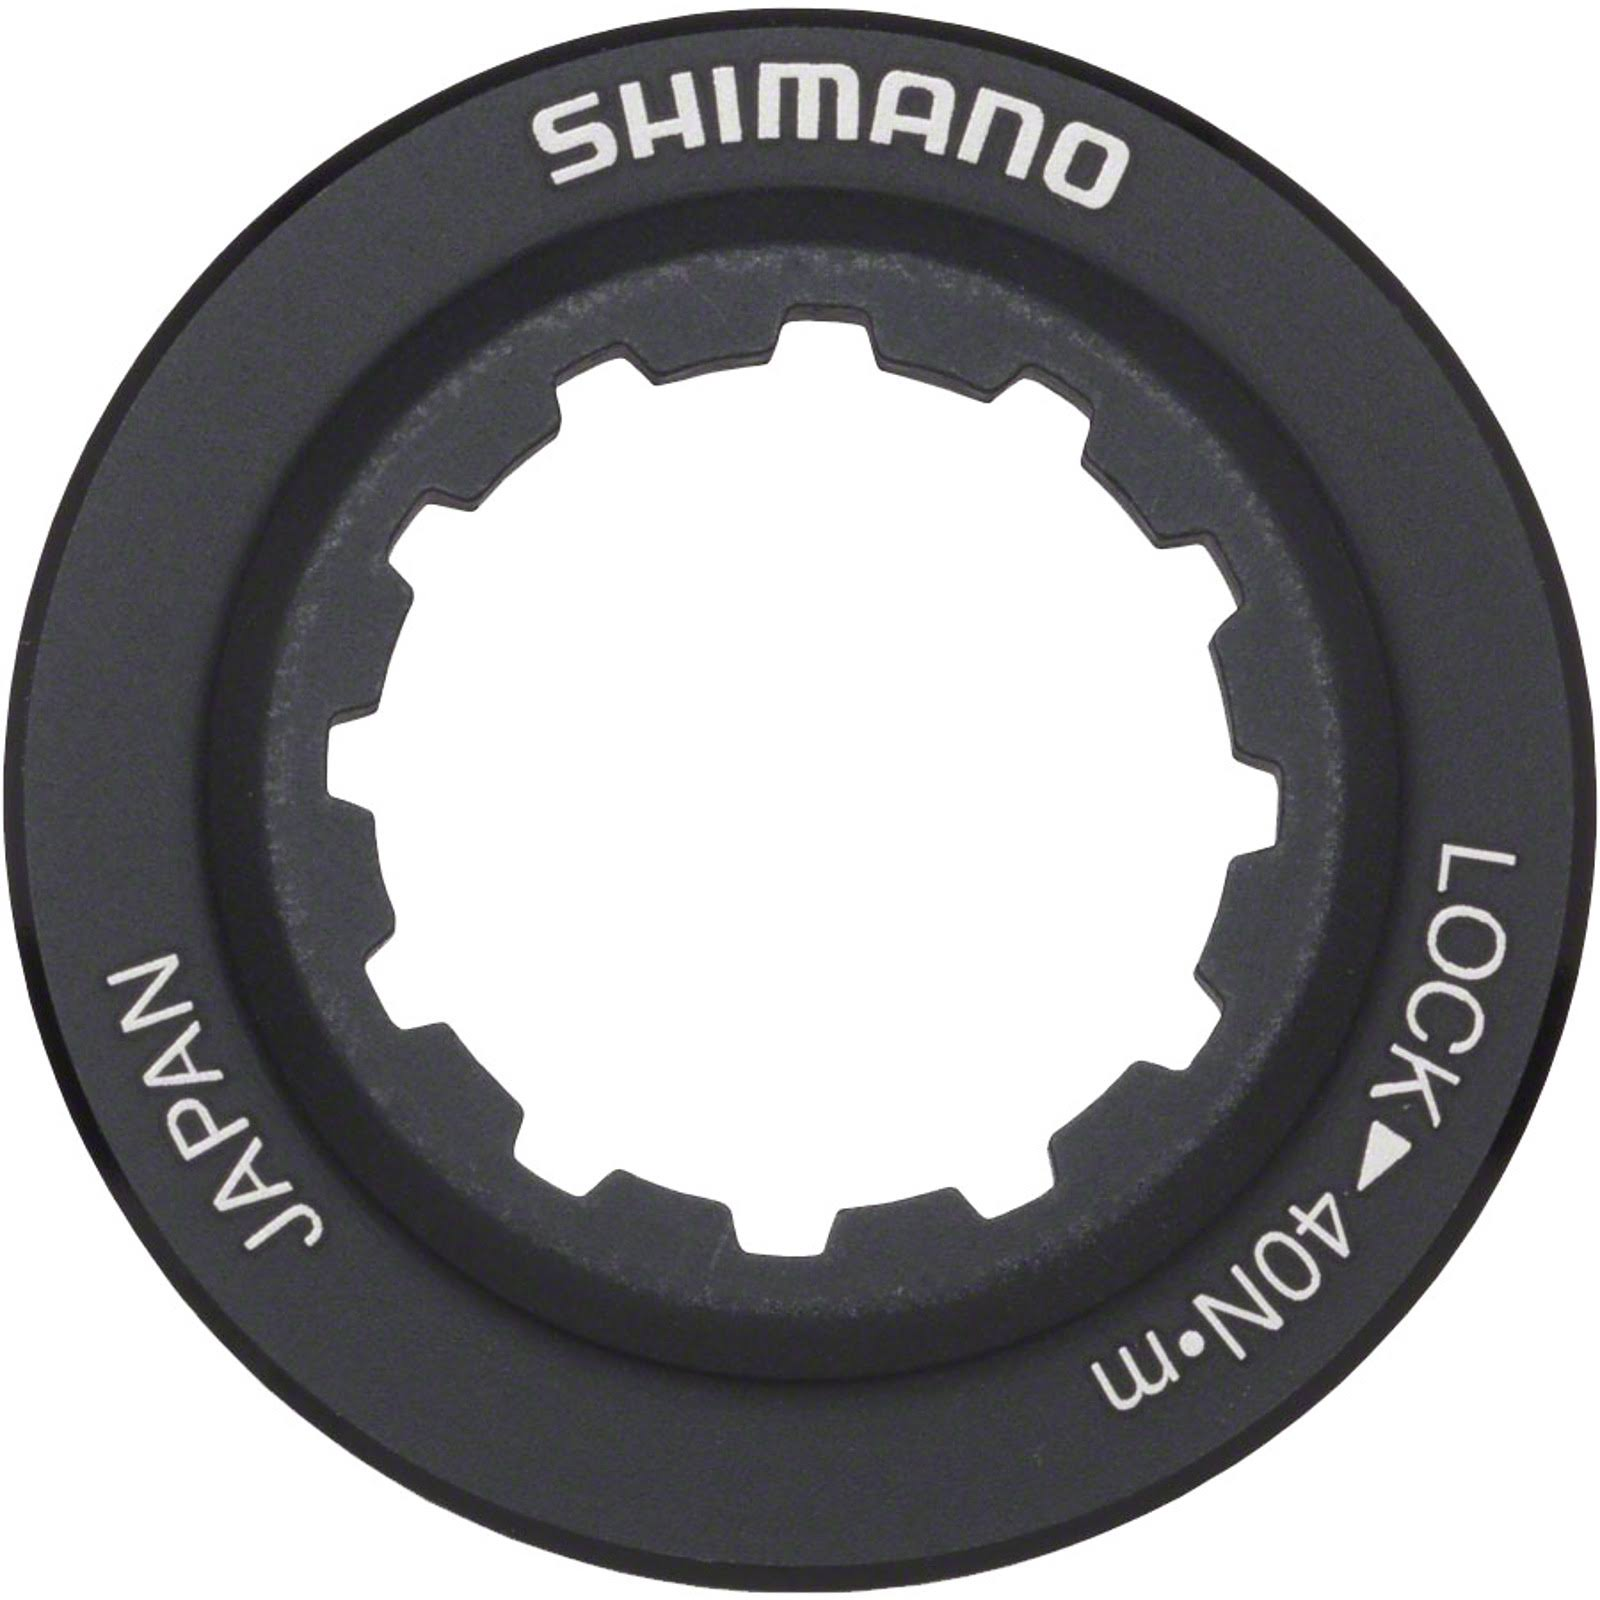 Shimano Rt98 Centerlock Disc Rotor Lockring - Black, Alloy